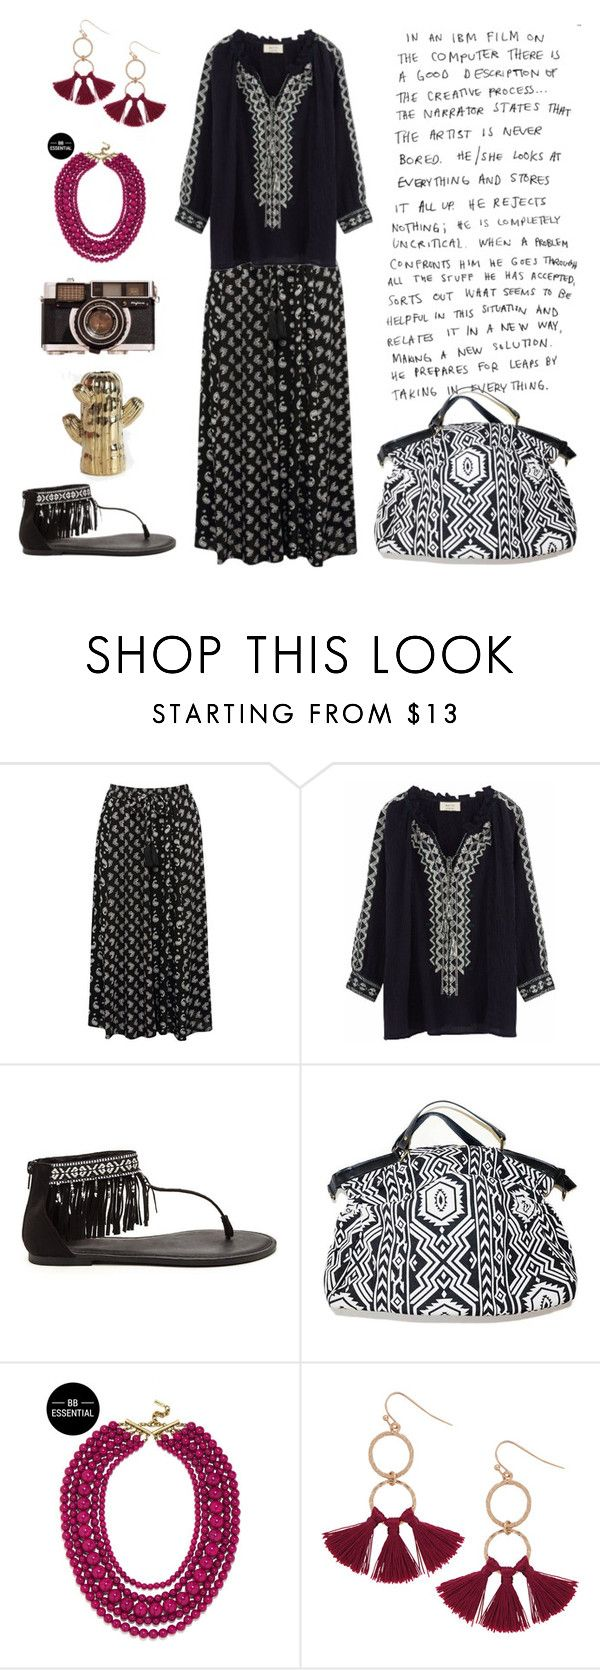 086. Summer Boho capsule for Pure Spring. Day 2 by sollis on Polyvore featuring мода, BA&SH, M&Co, BaubleBar, Humble Chic and Temerity Jones